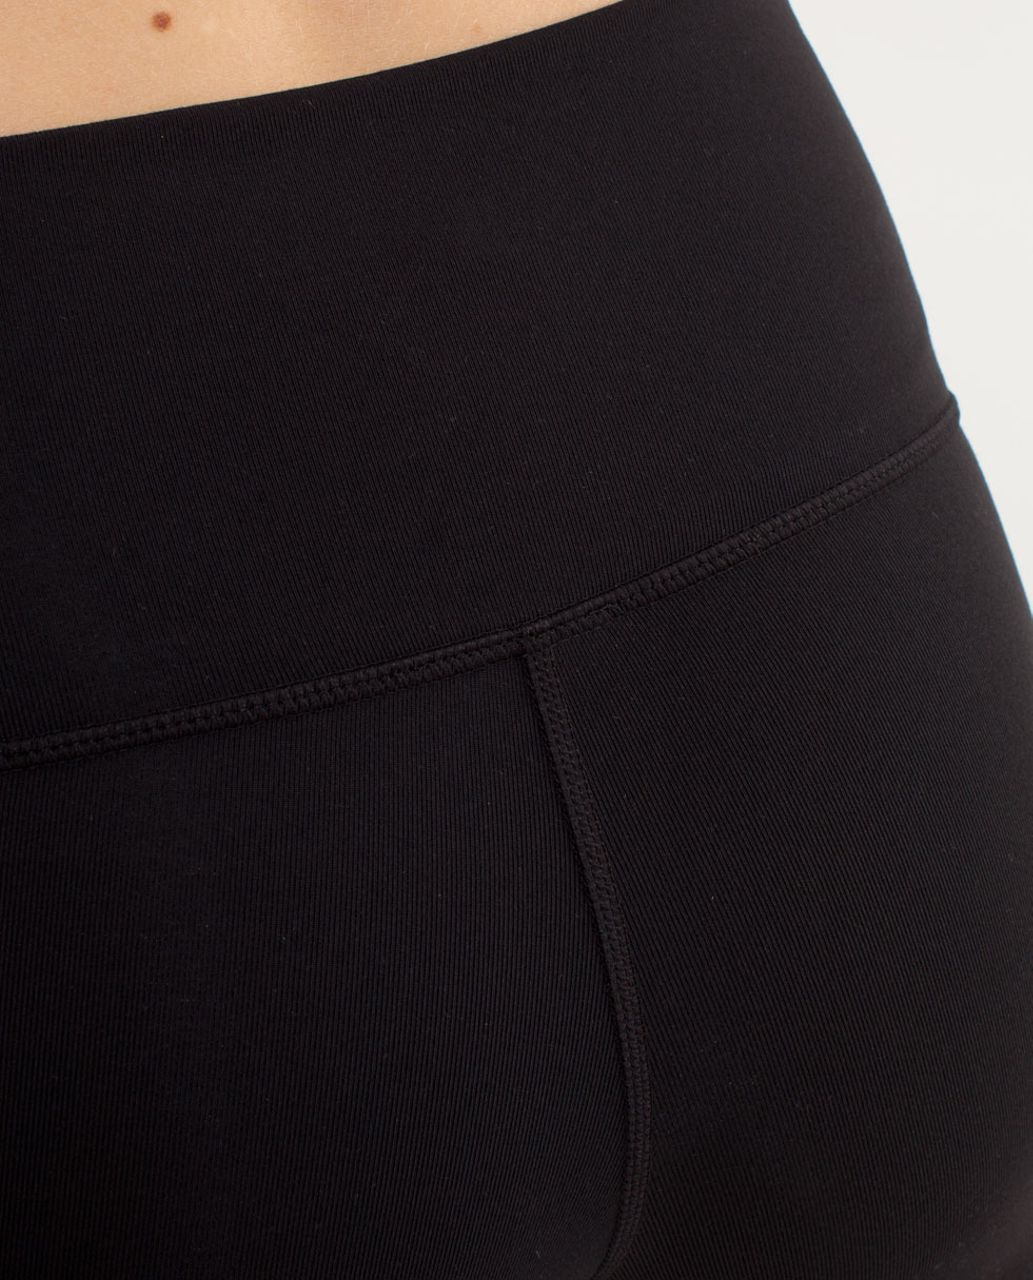 Lululemon Recognition Pant - Black